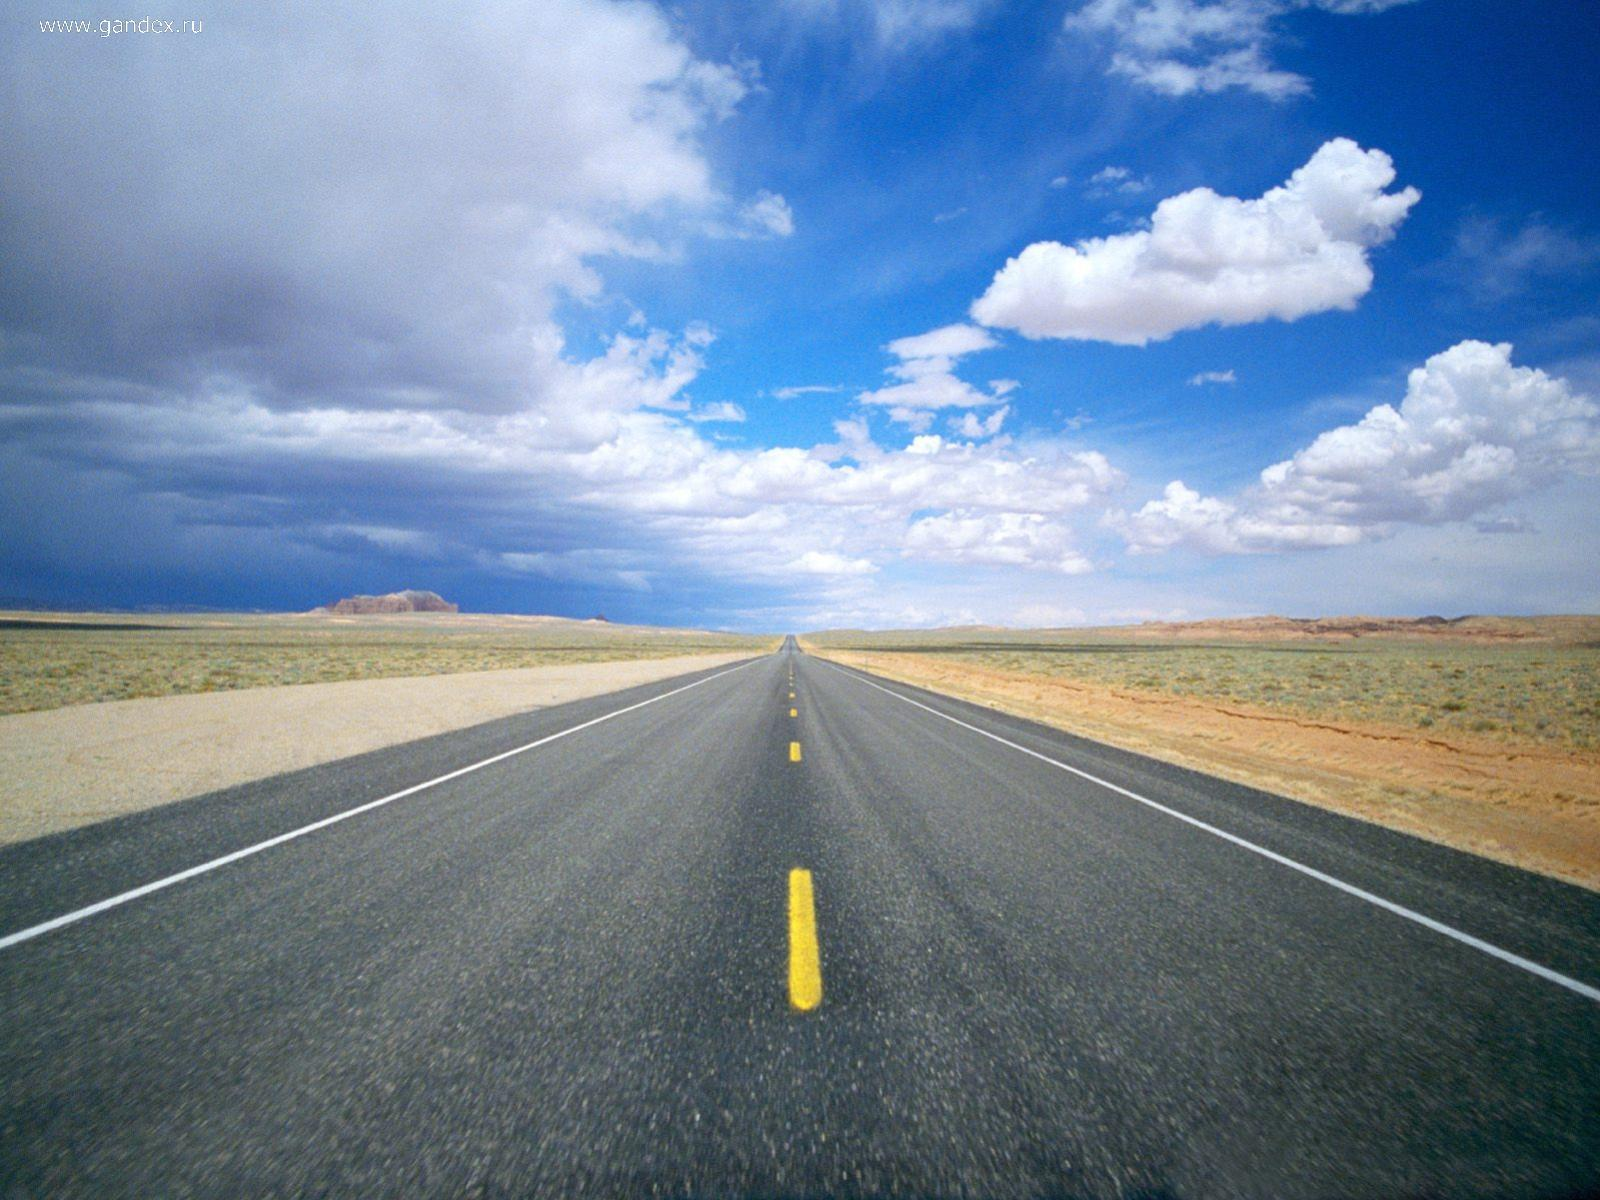 46986 download wallpaper Landscape, Roads screensavers and pictures for free